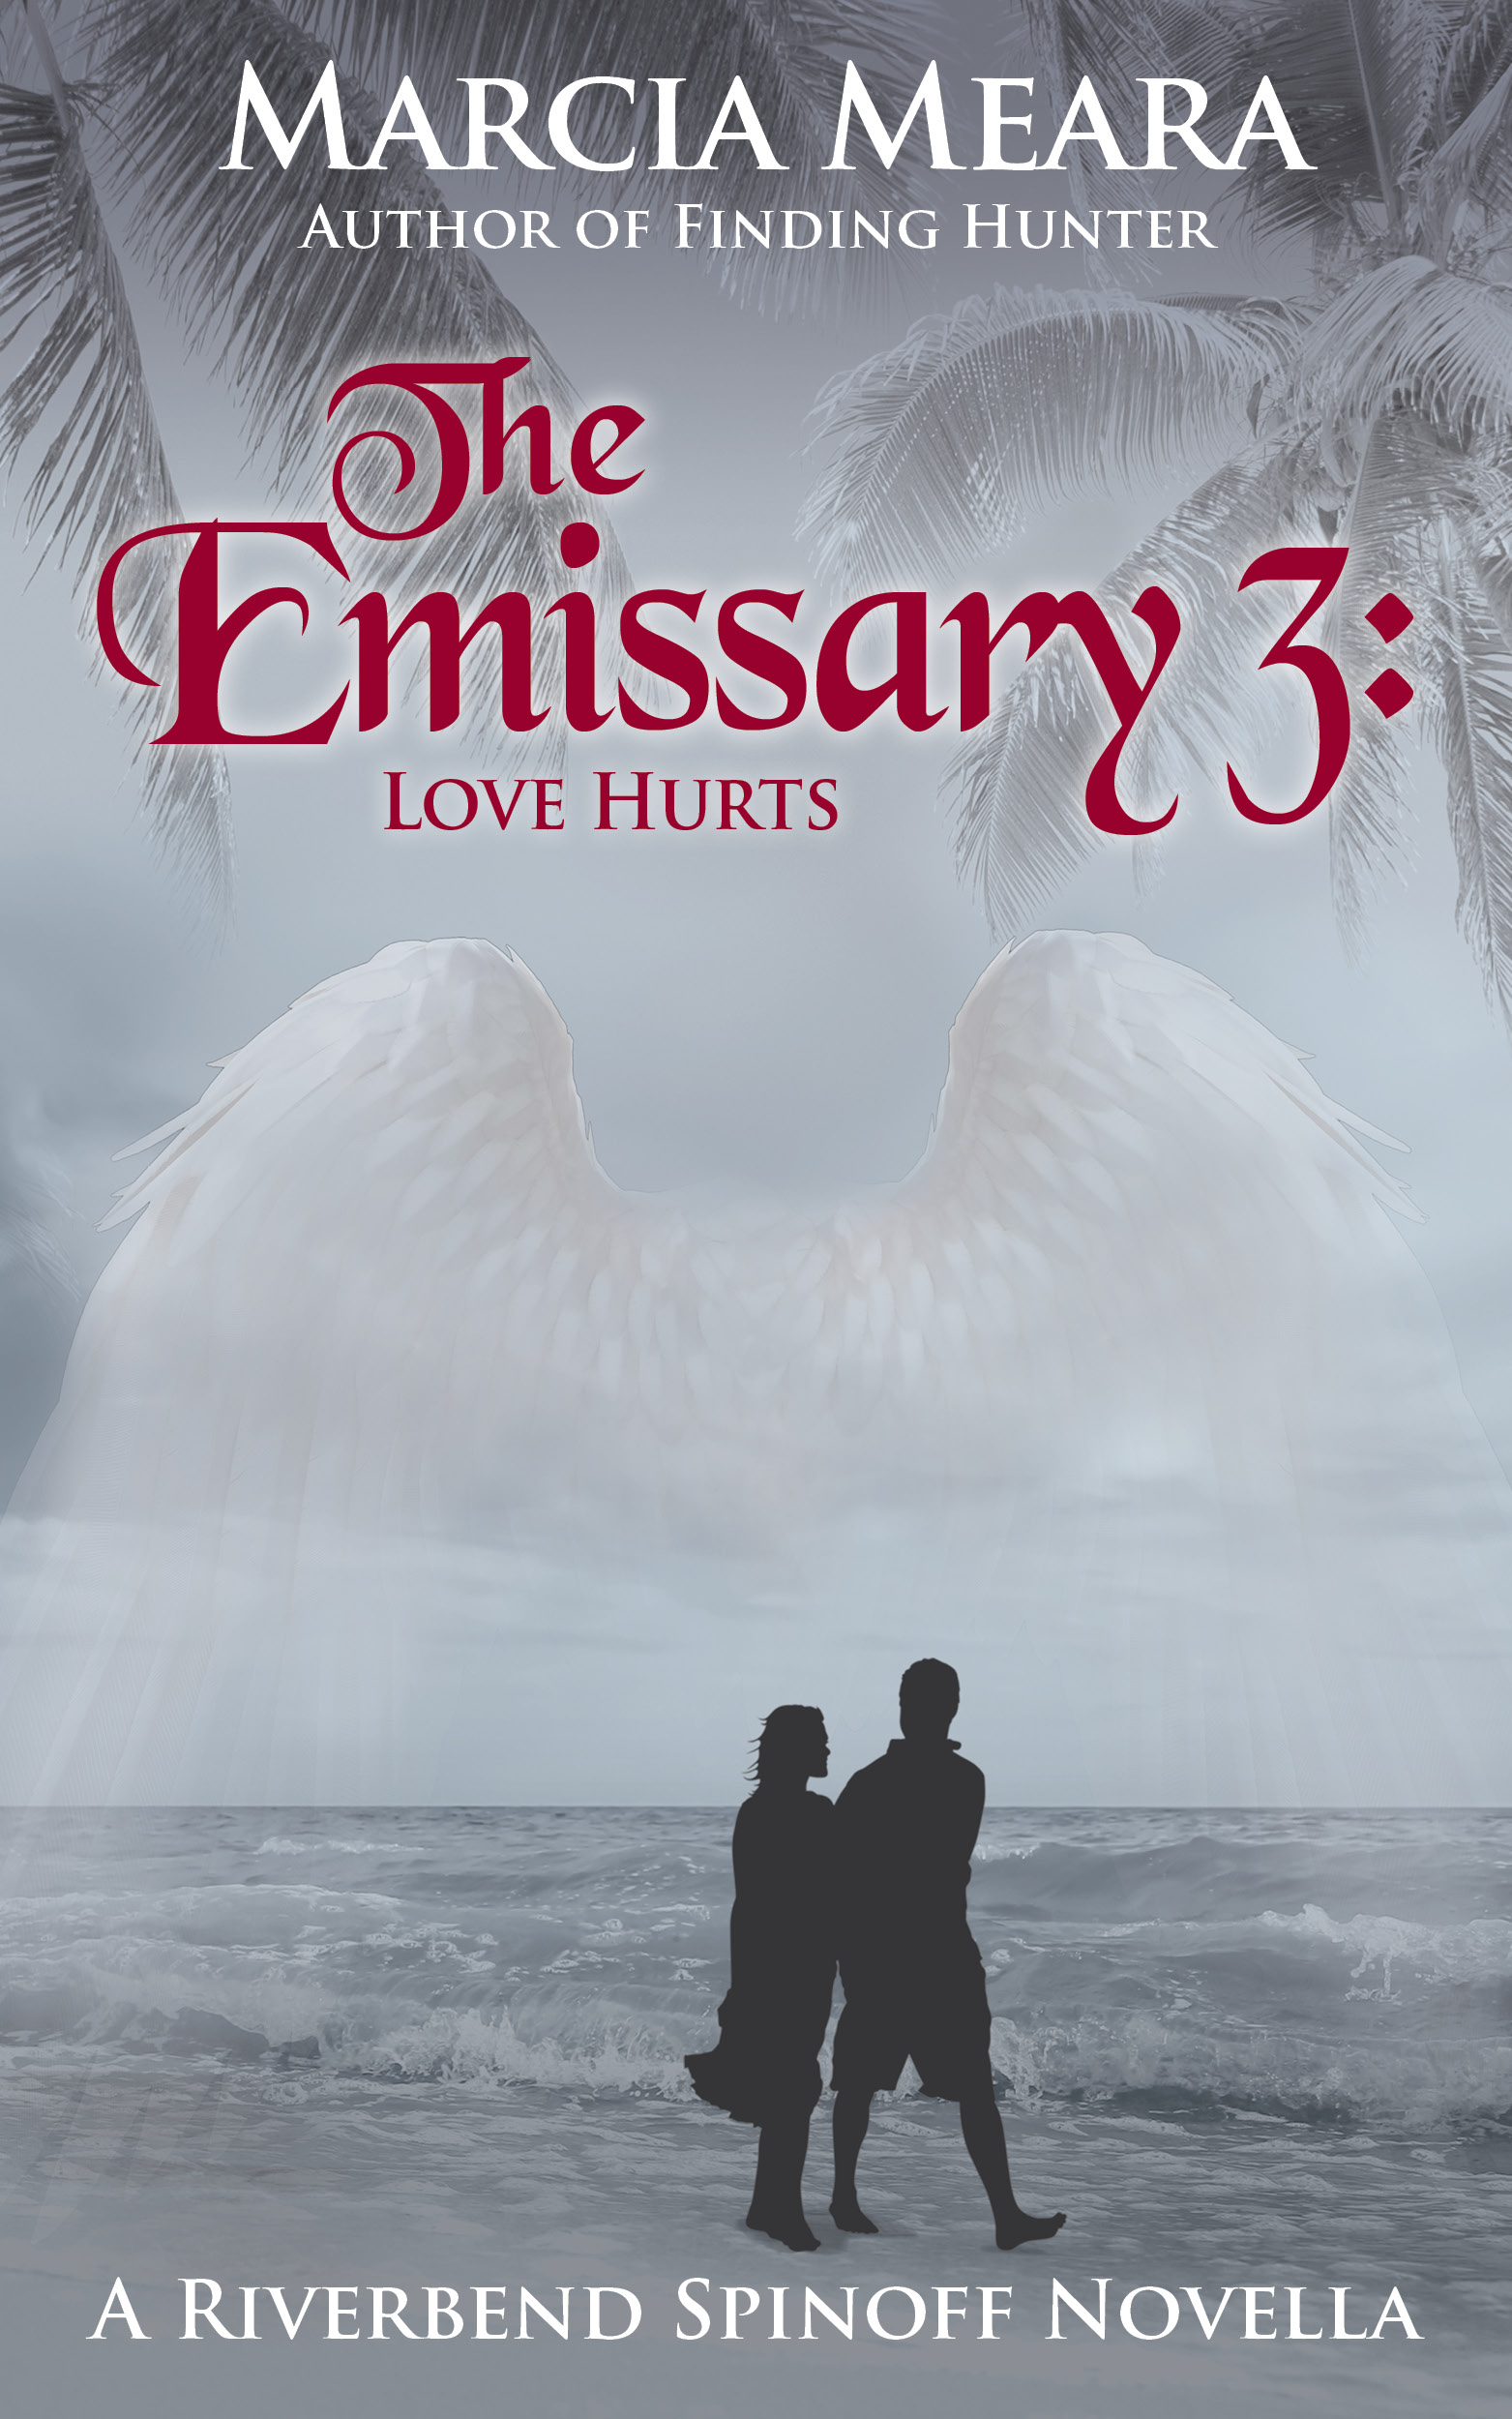 book cover for The Emissary 3 by Marcia Meara shows silhouettes of couple gazing an ocean, angel wings over sky